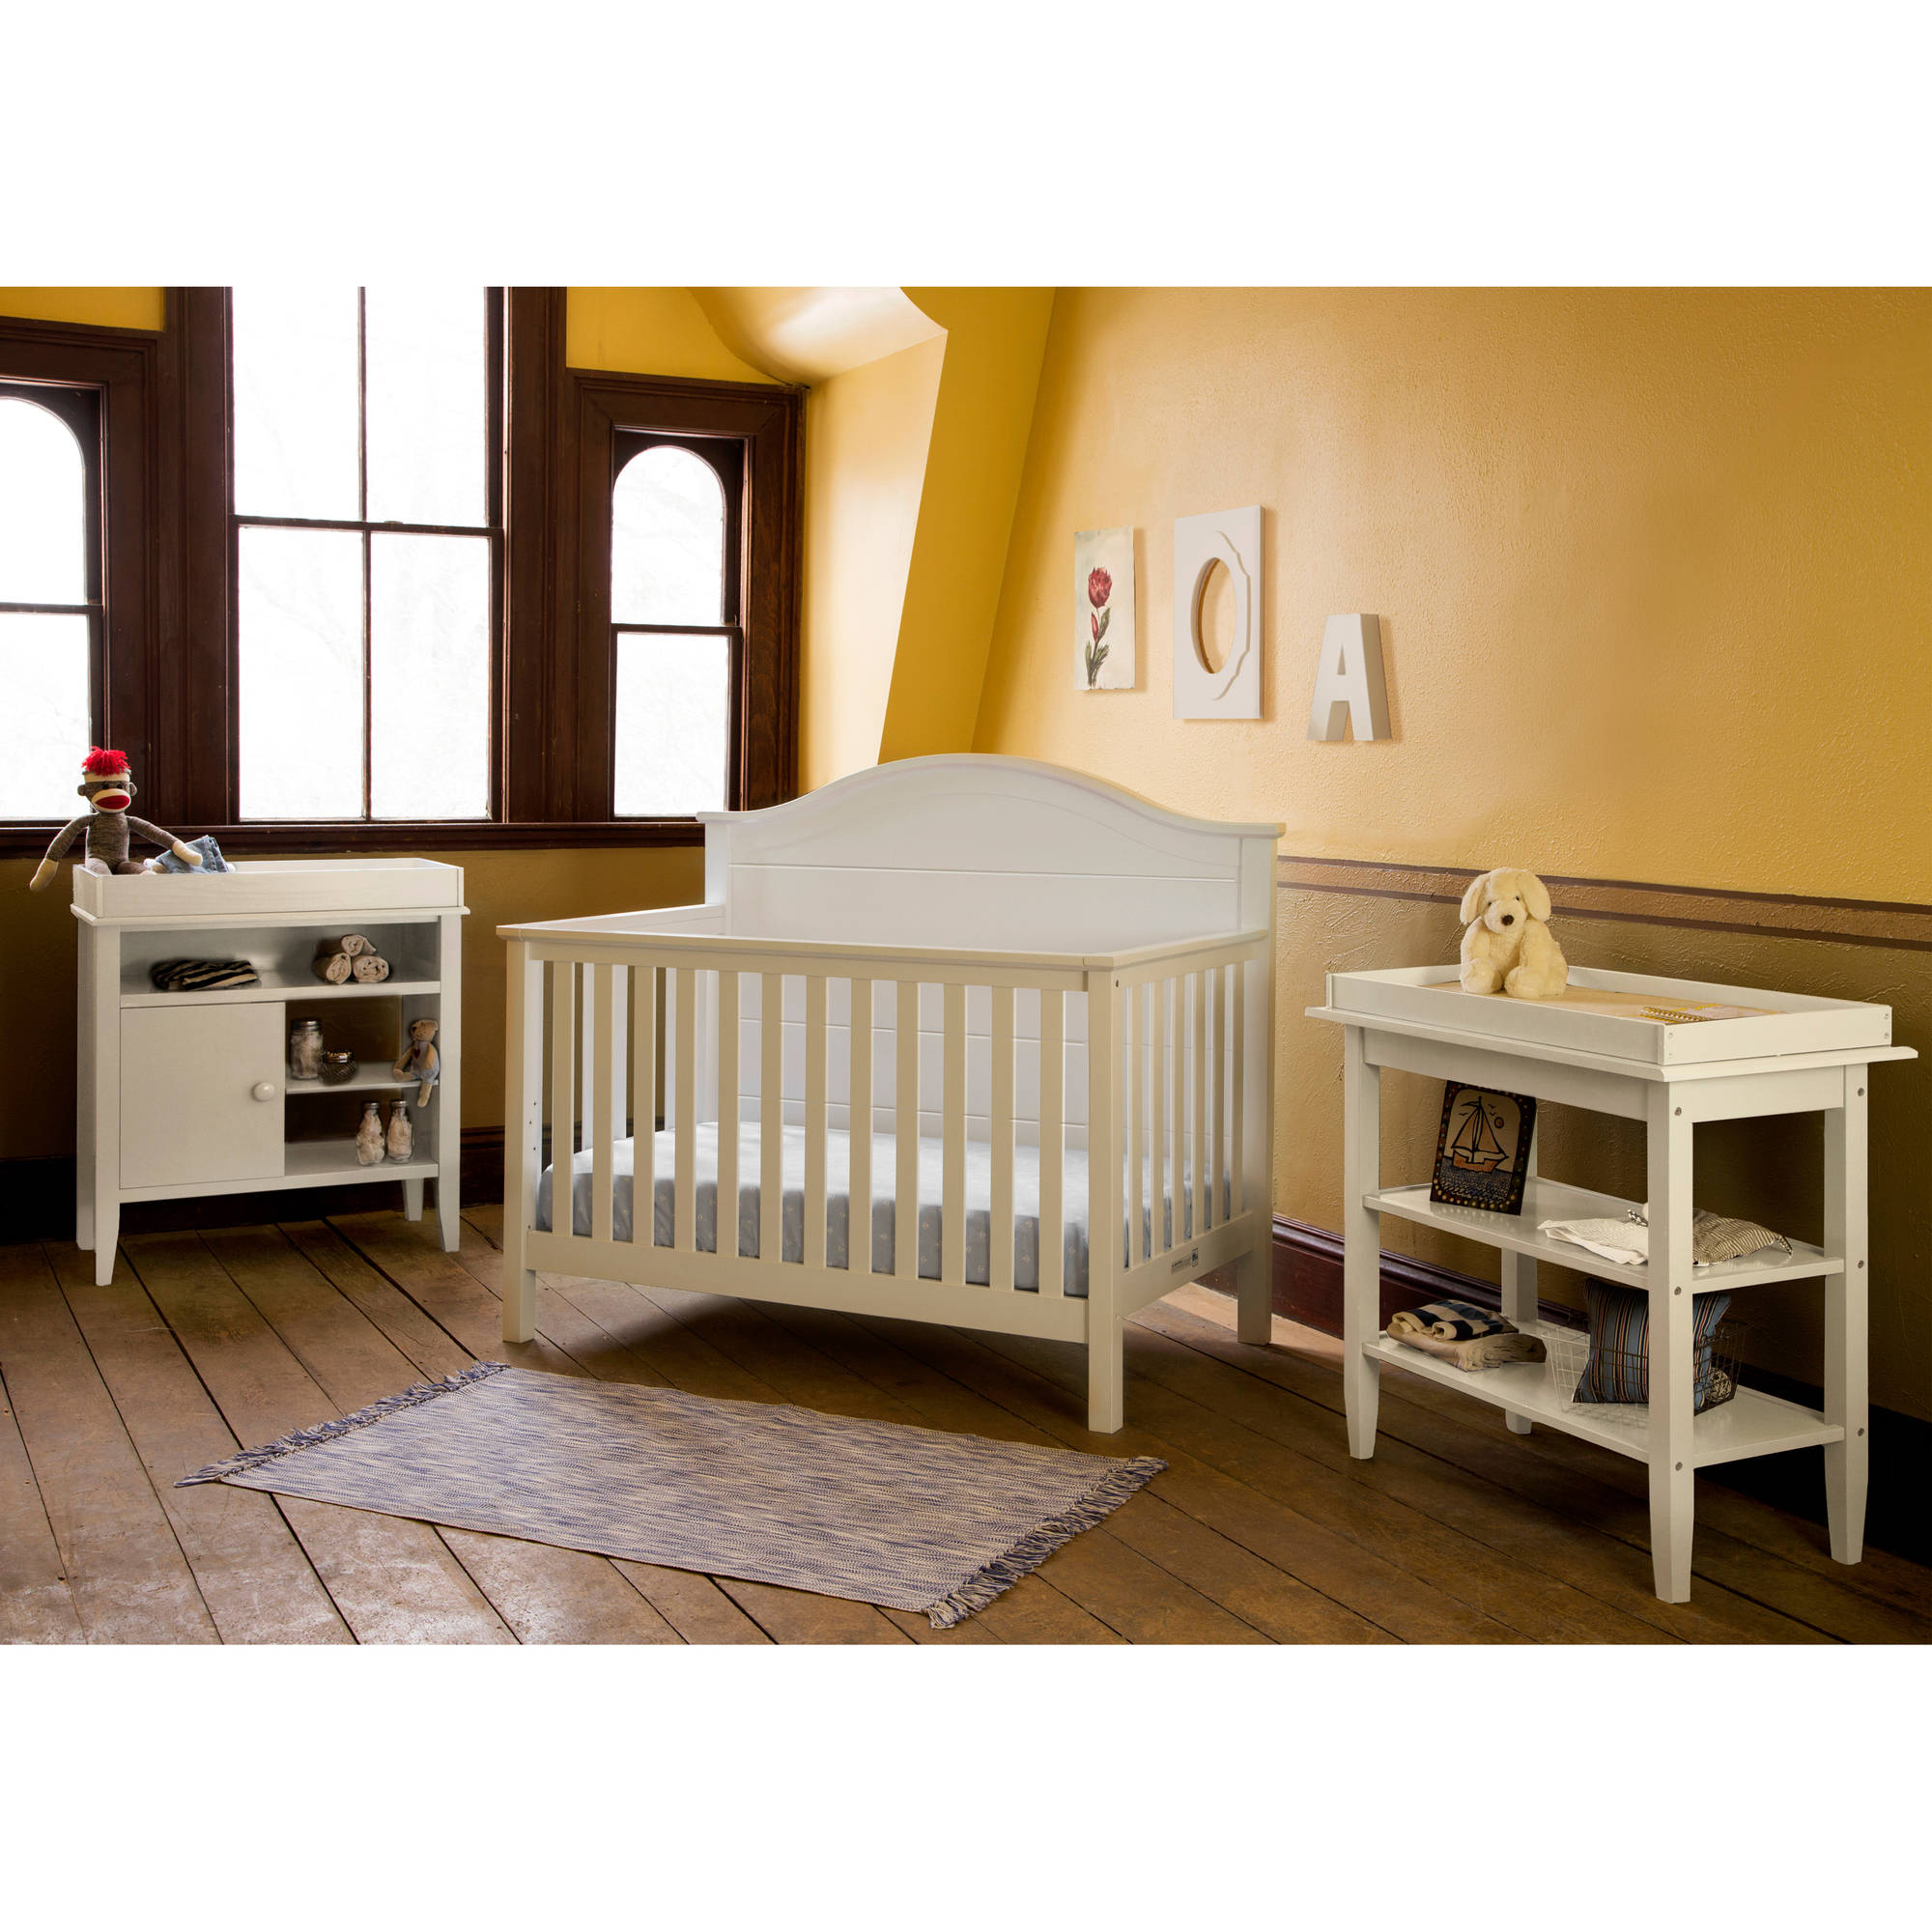 Lolly and Me Cottage 4-in-1 Fixed-Side Convertible Crib, White